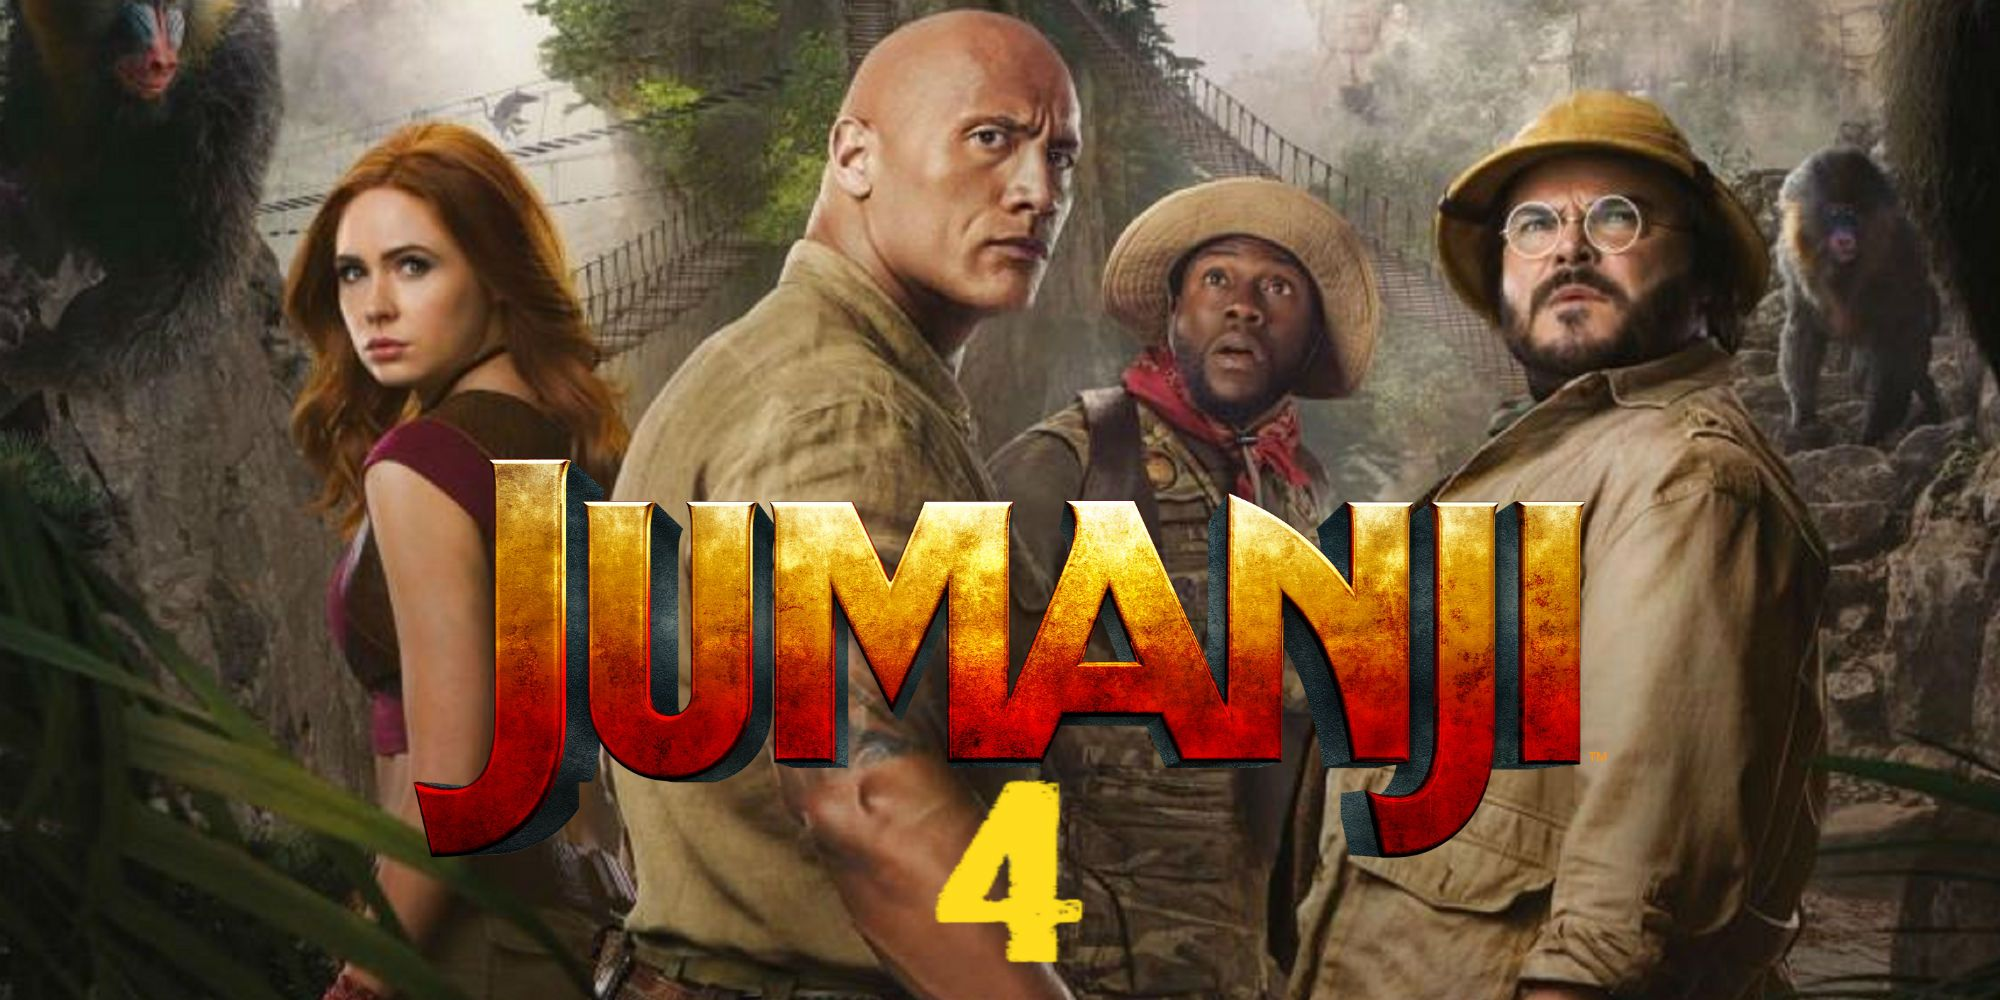 Jumanji 4 Updates: Release Date & Story Details | Screen Rant